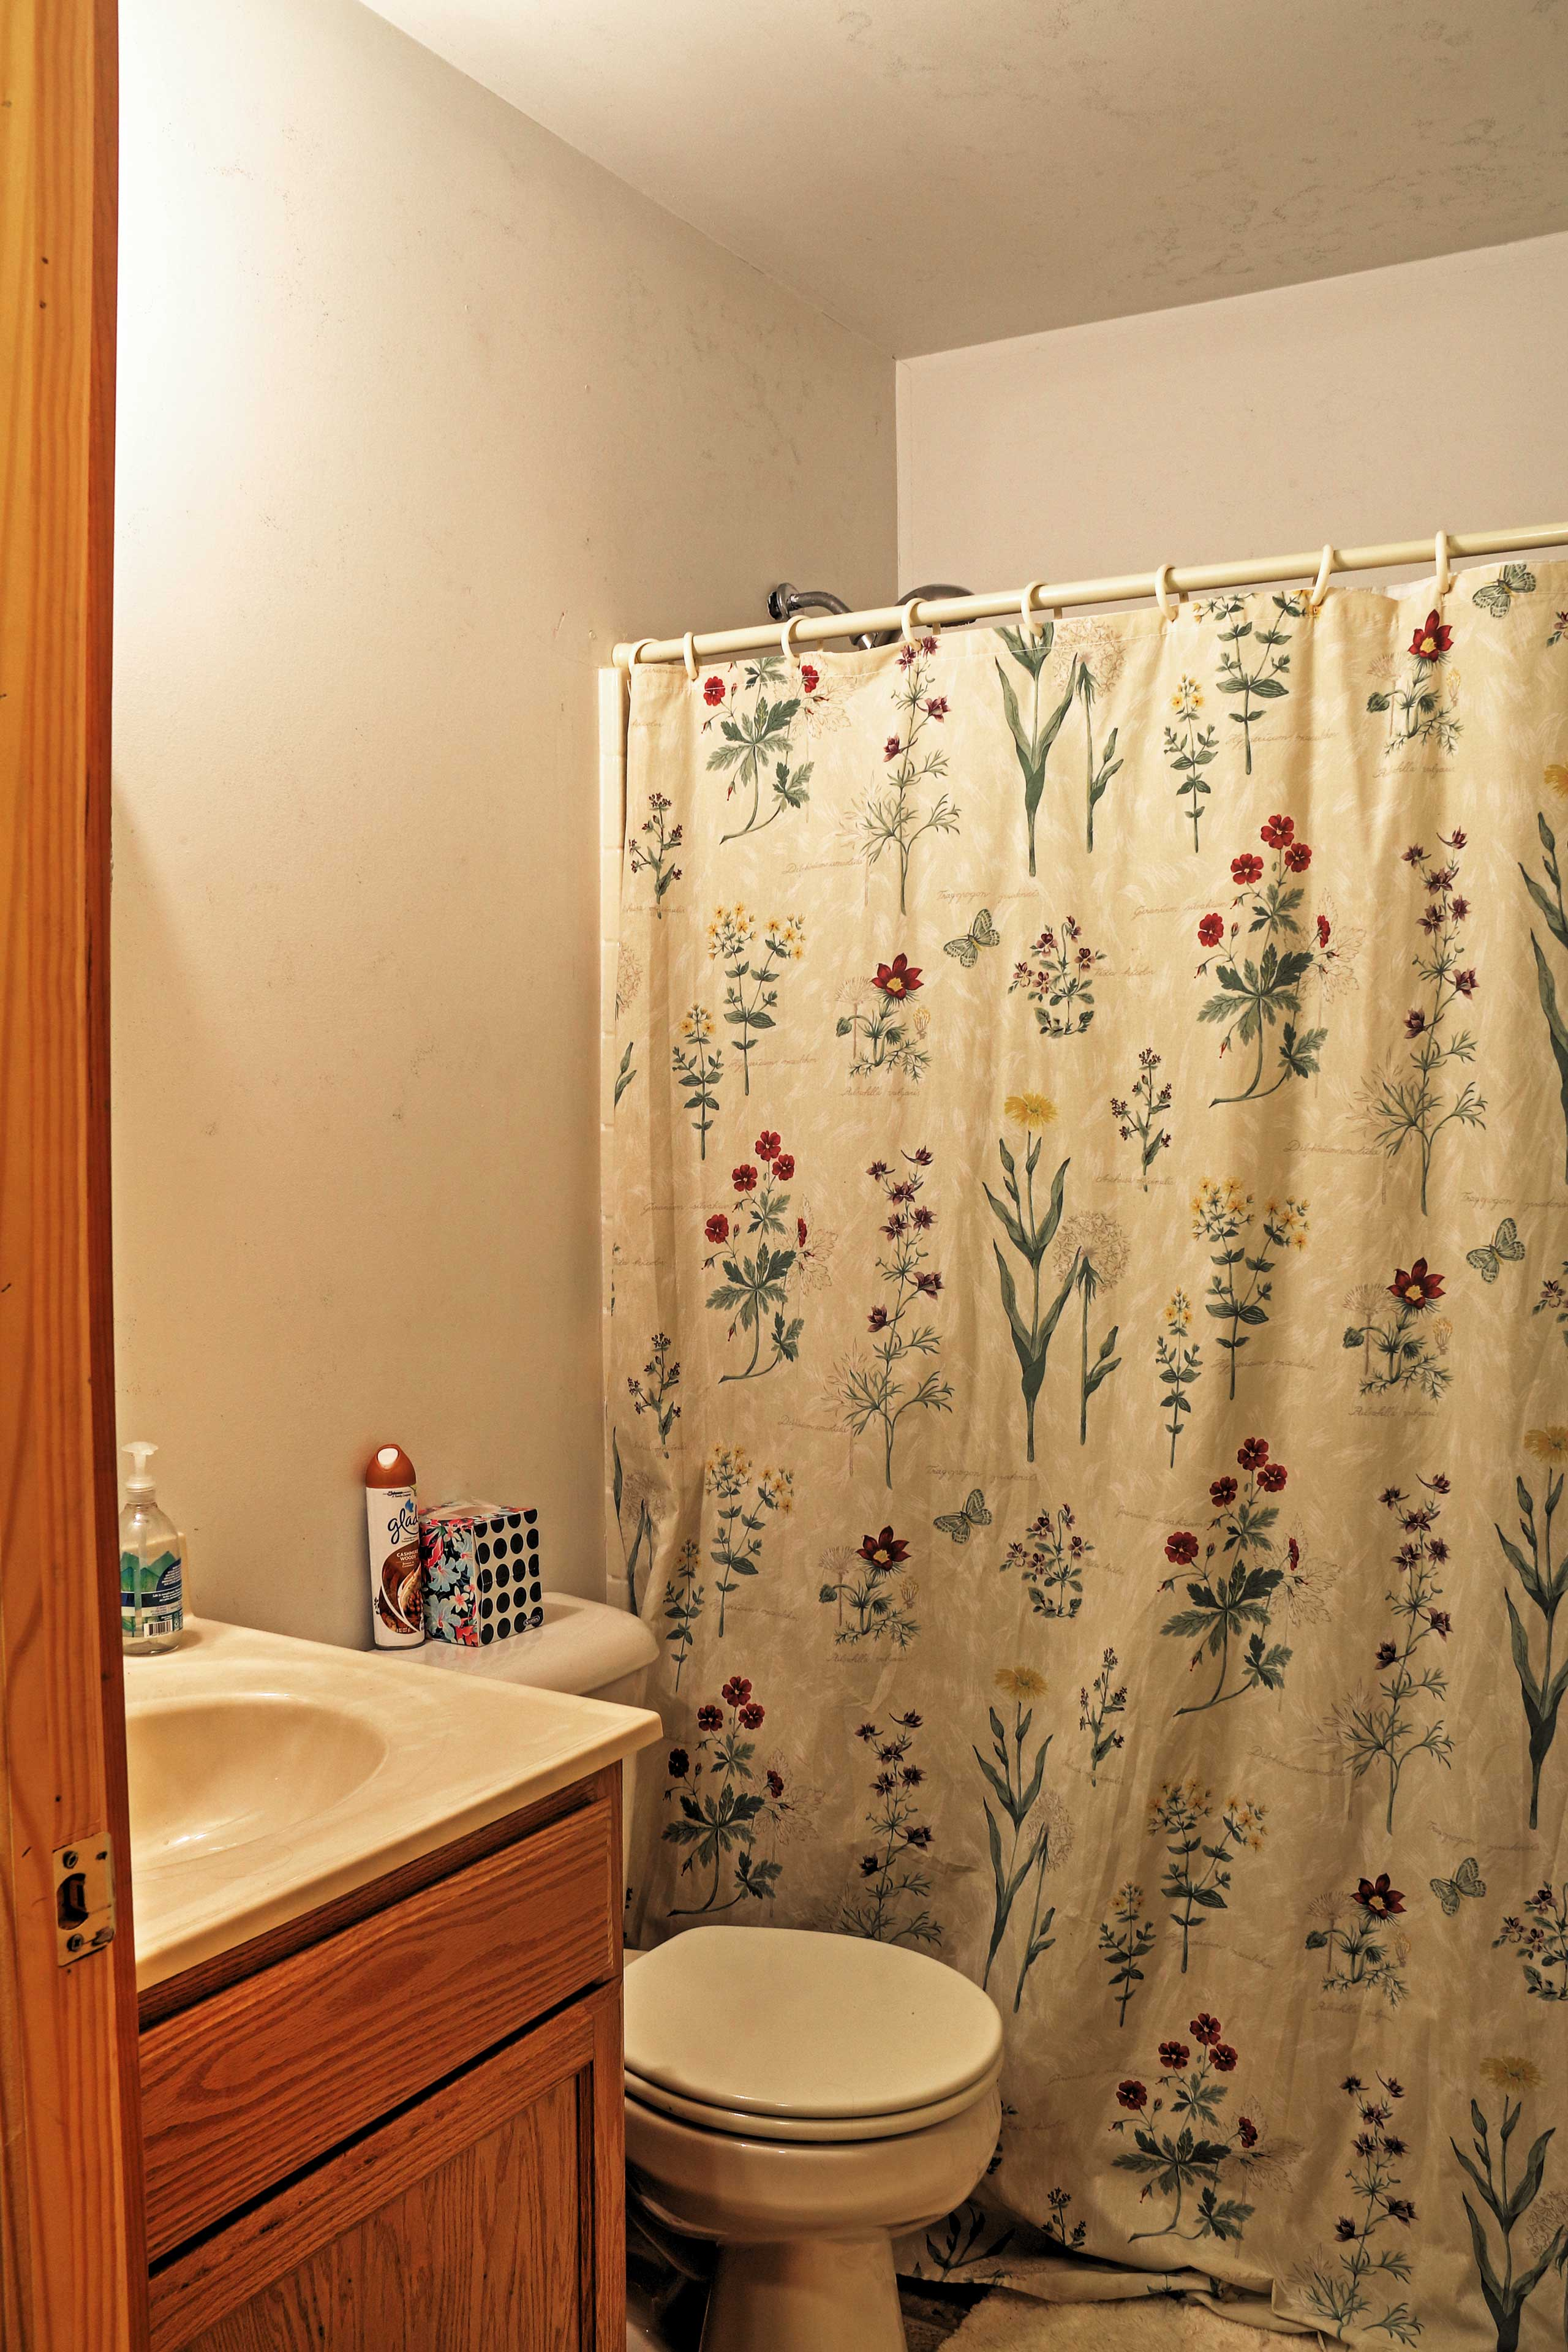 Feel fresh as a flower after rinsing off in this clean shower, decorated with a floral curtain.